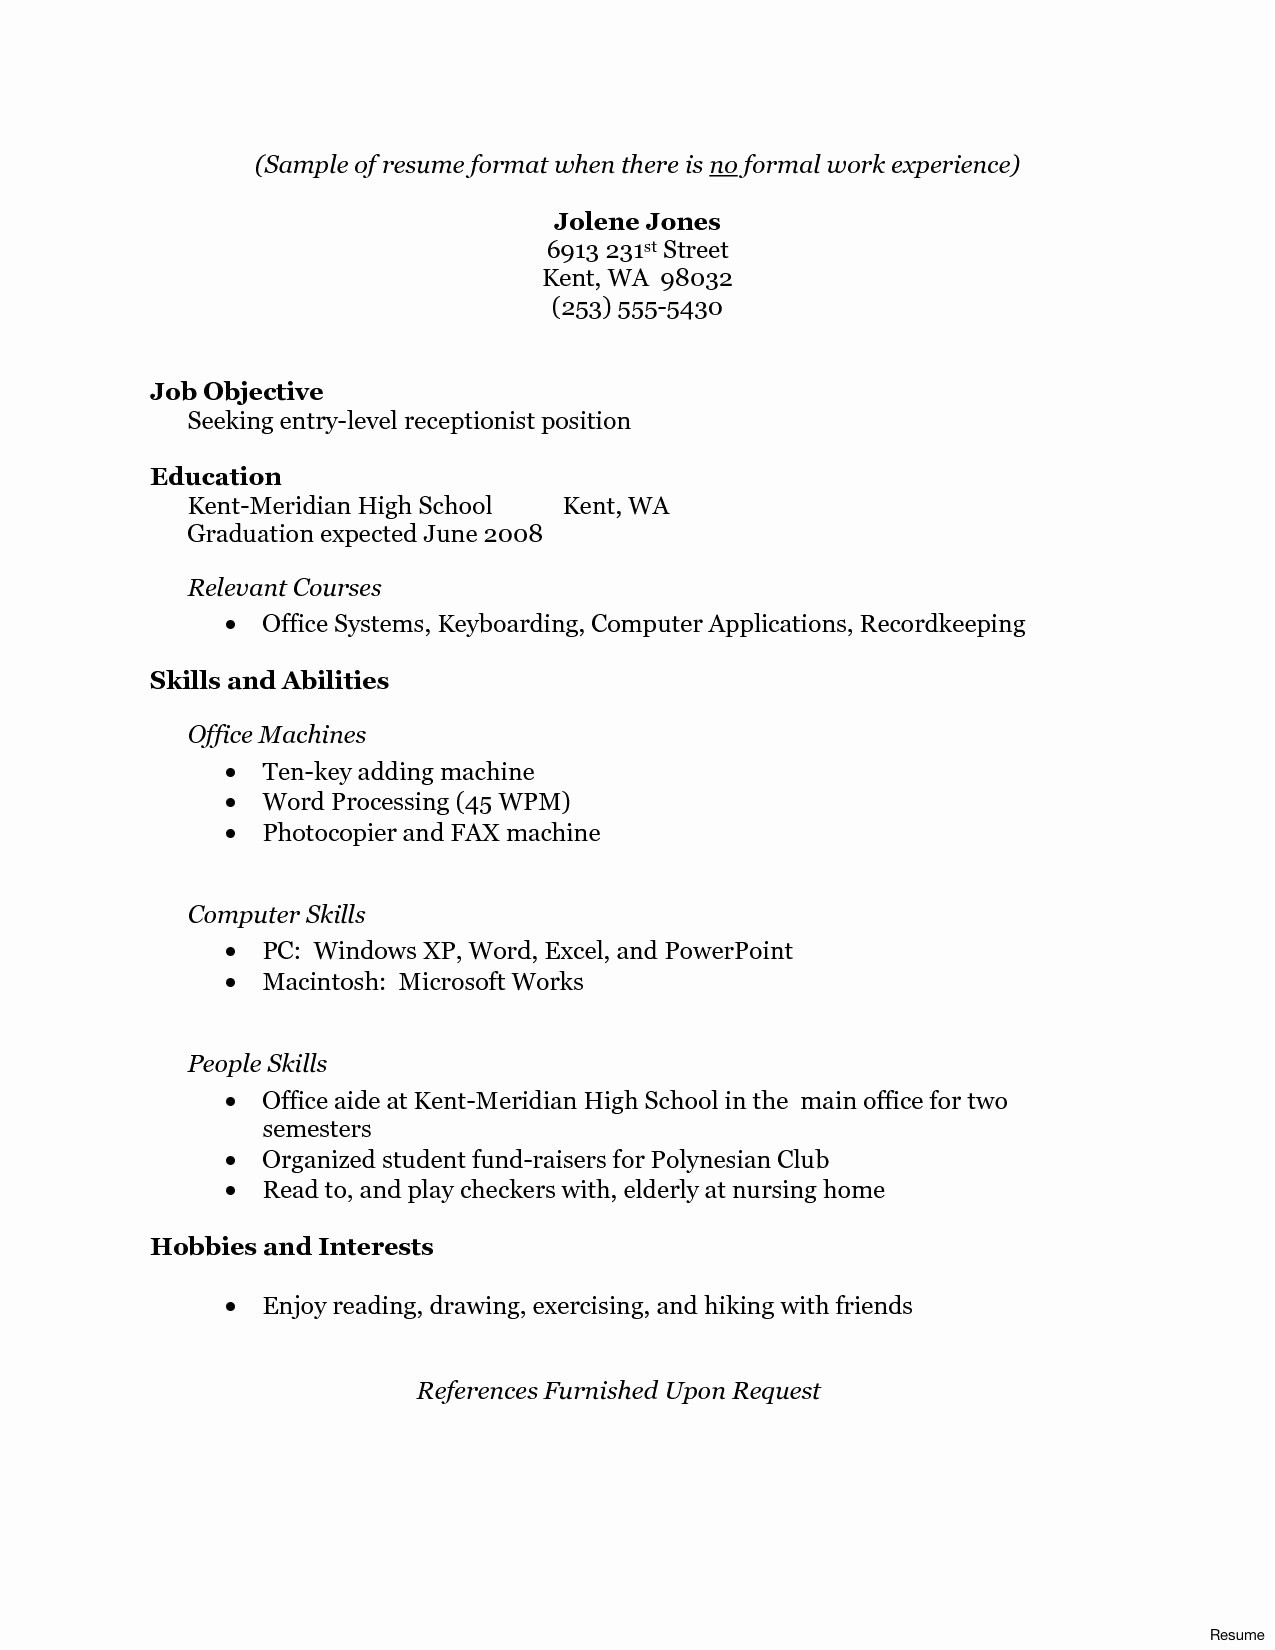 Professional Summary for Resume No Work Experience - Resume Professional Summary Examples Awesome Resume for Law School